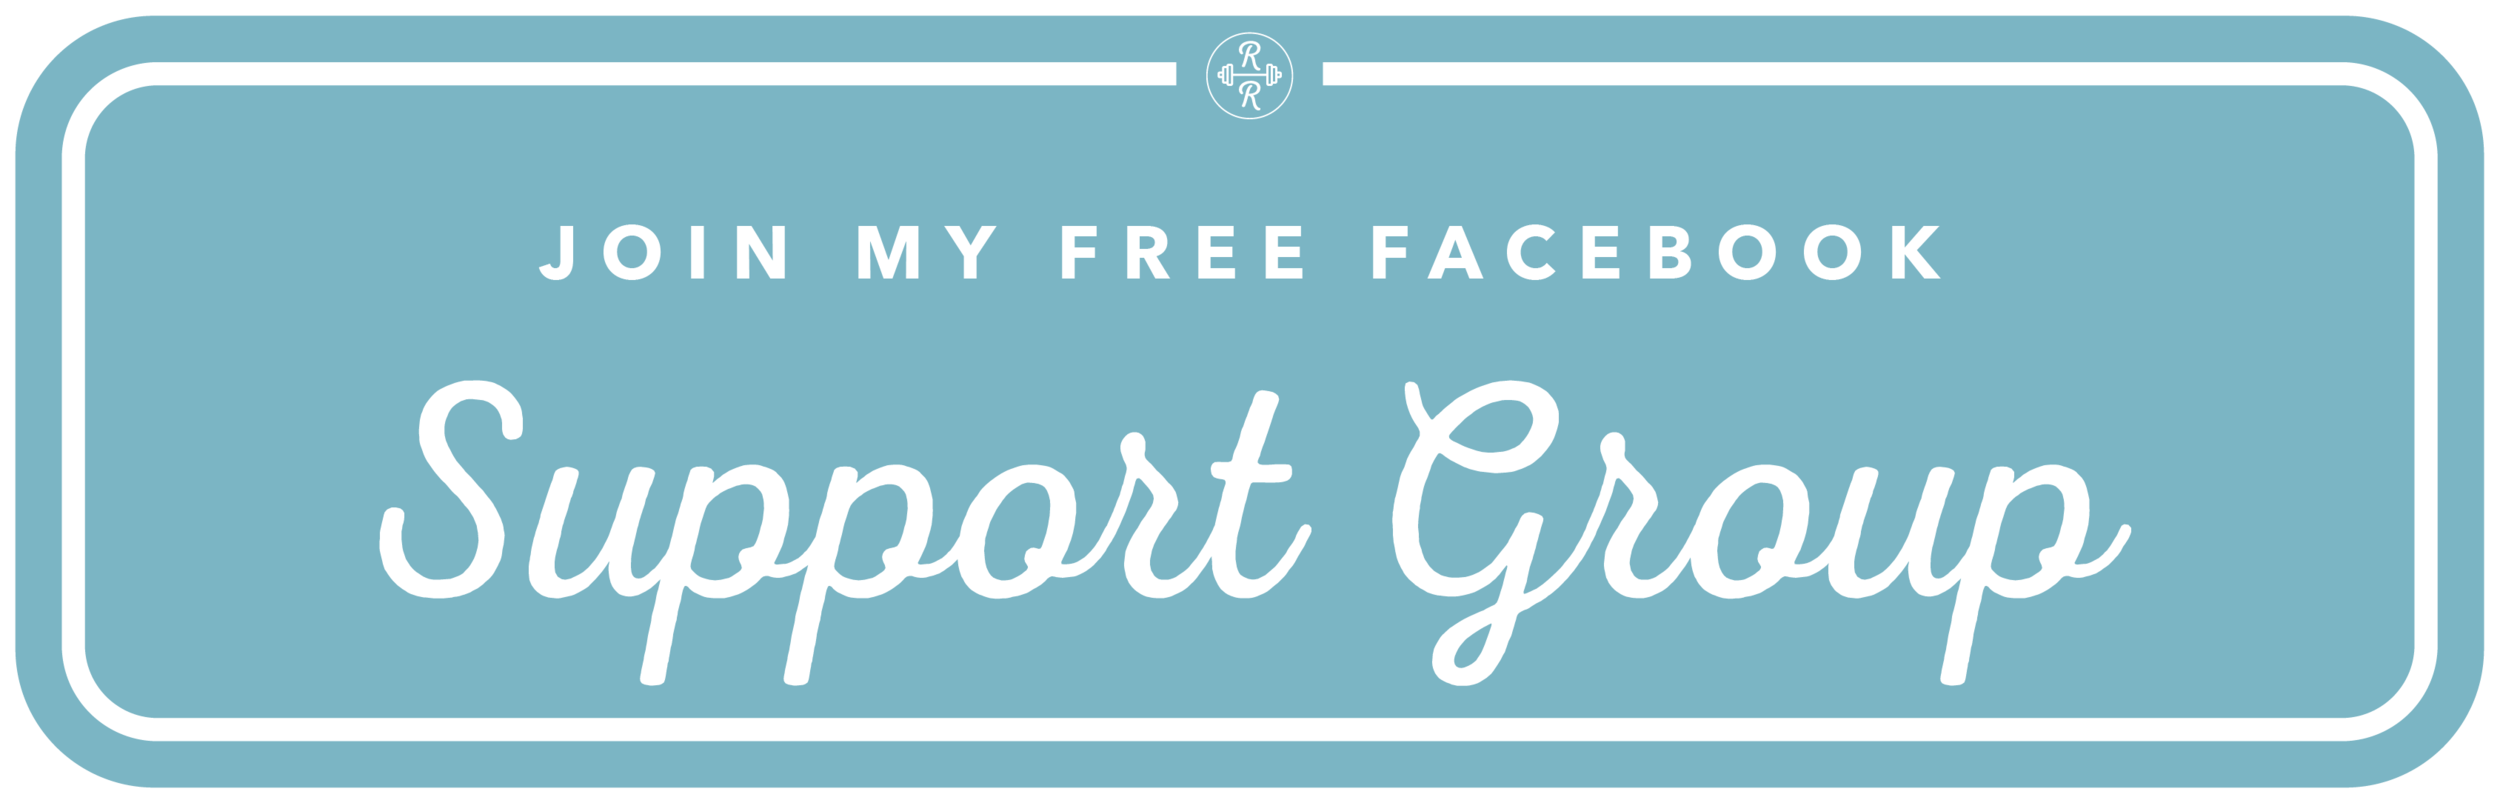 Join My Free Facebook Support Group!